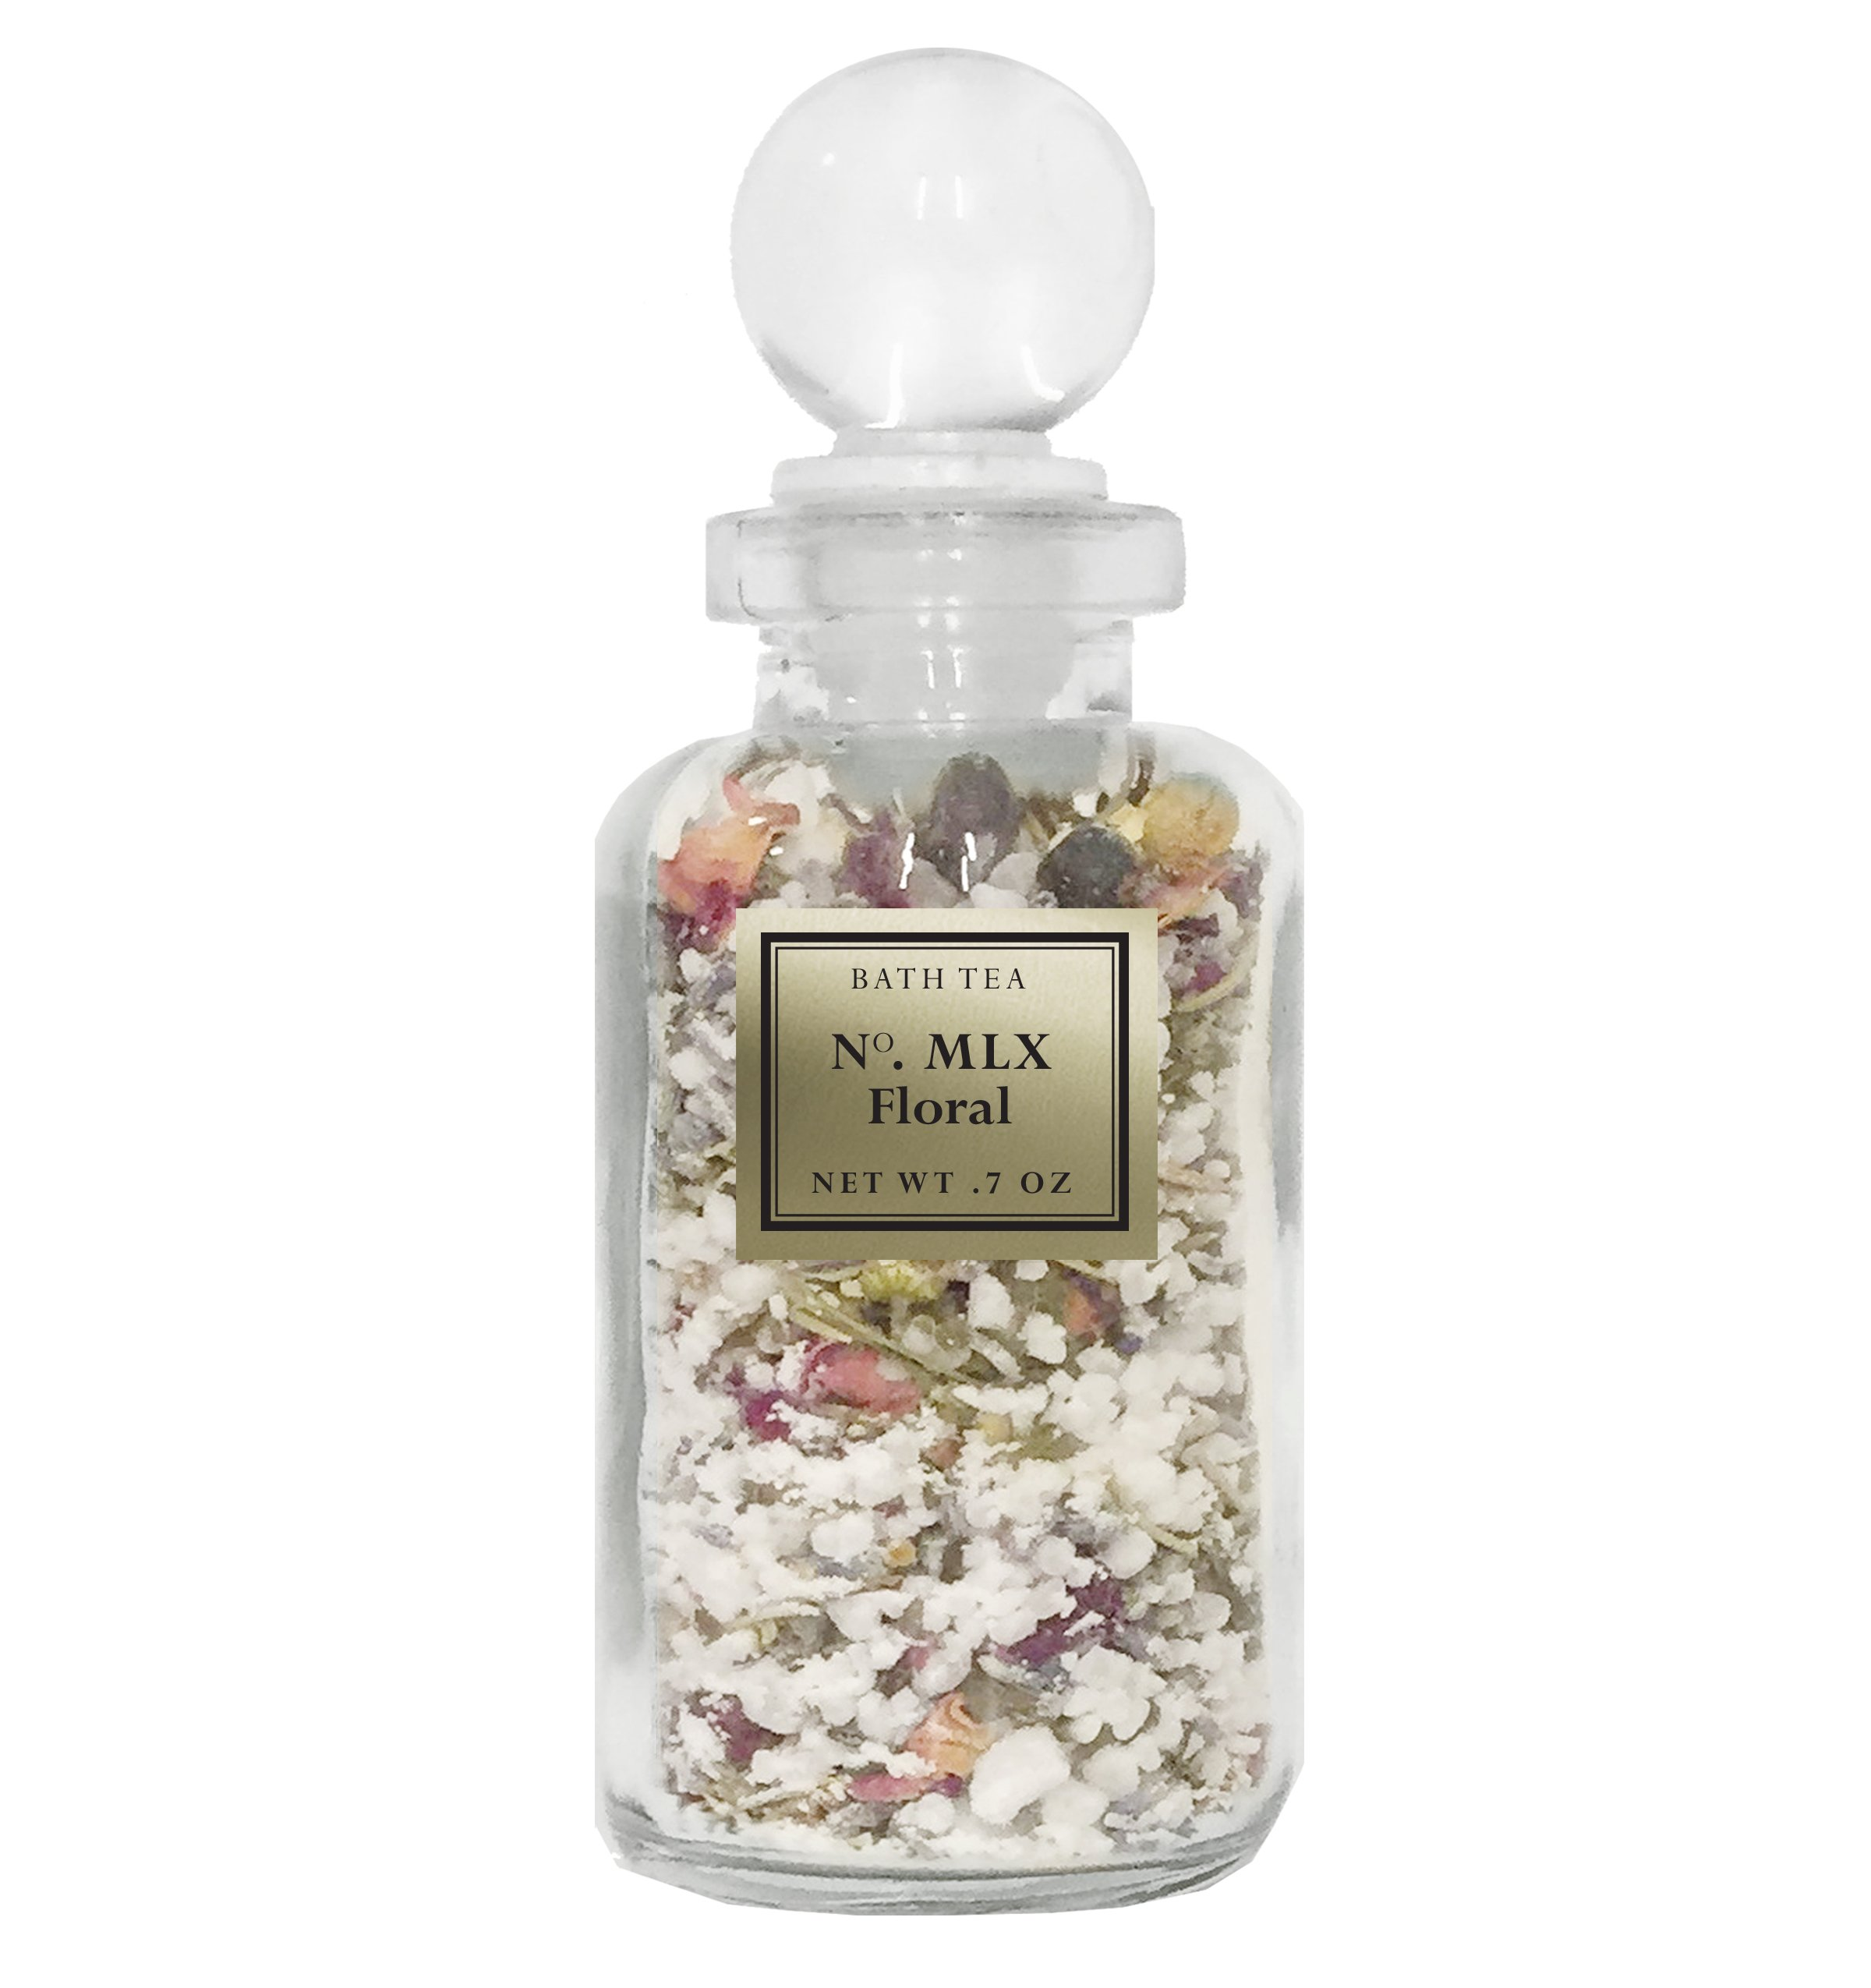 Bath Tea - Floral - Natural Herbal Aromatherapy Bath Soak for Tub - Makes a Great Gift - Collectible Glass Apothecary Bottle by BIOS Apothecary